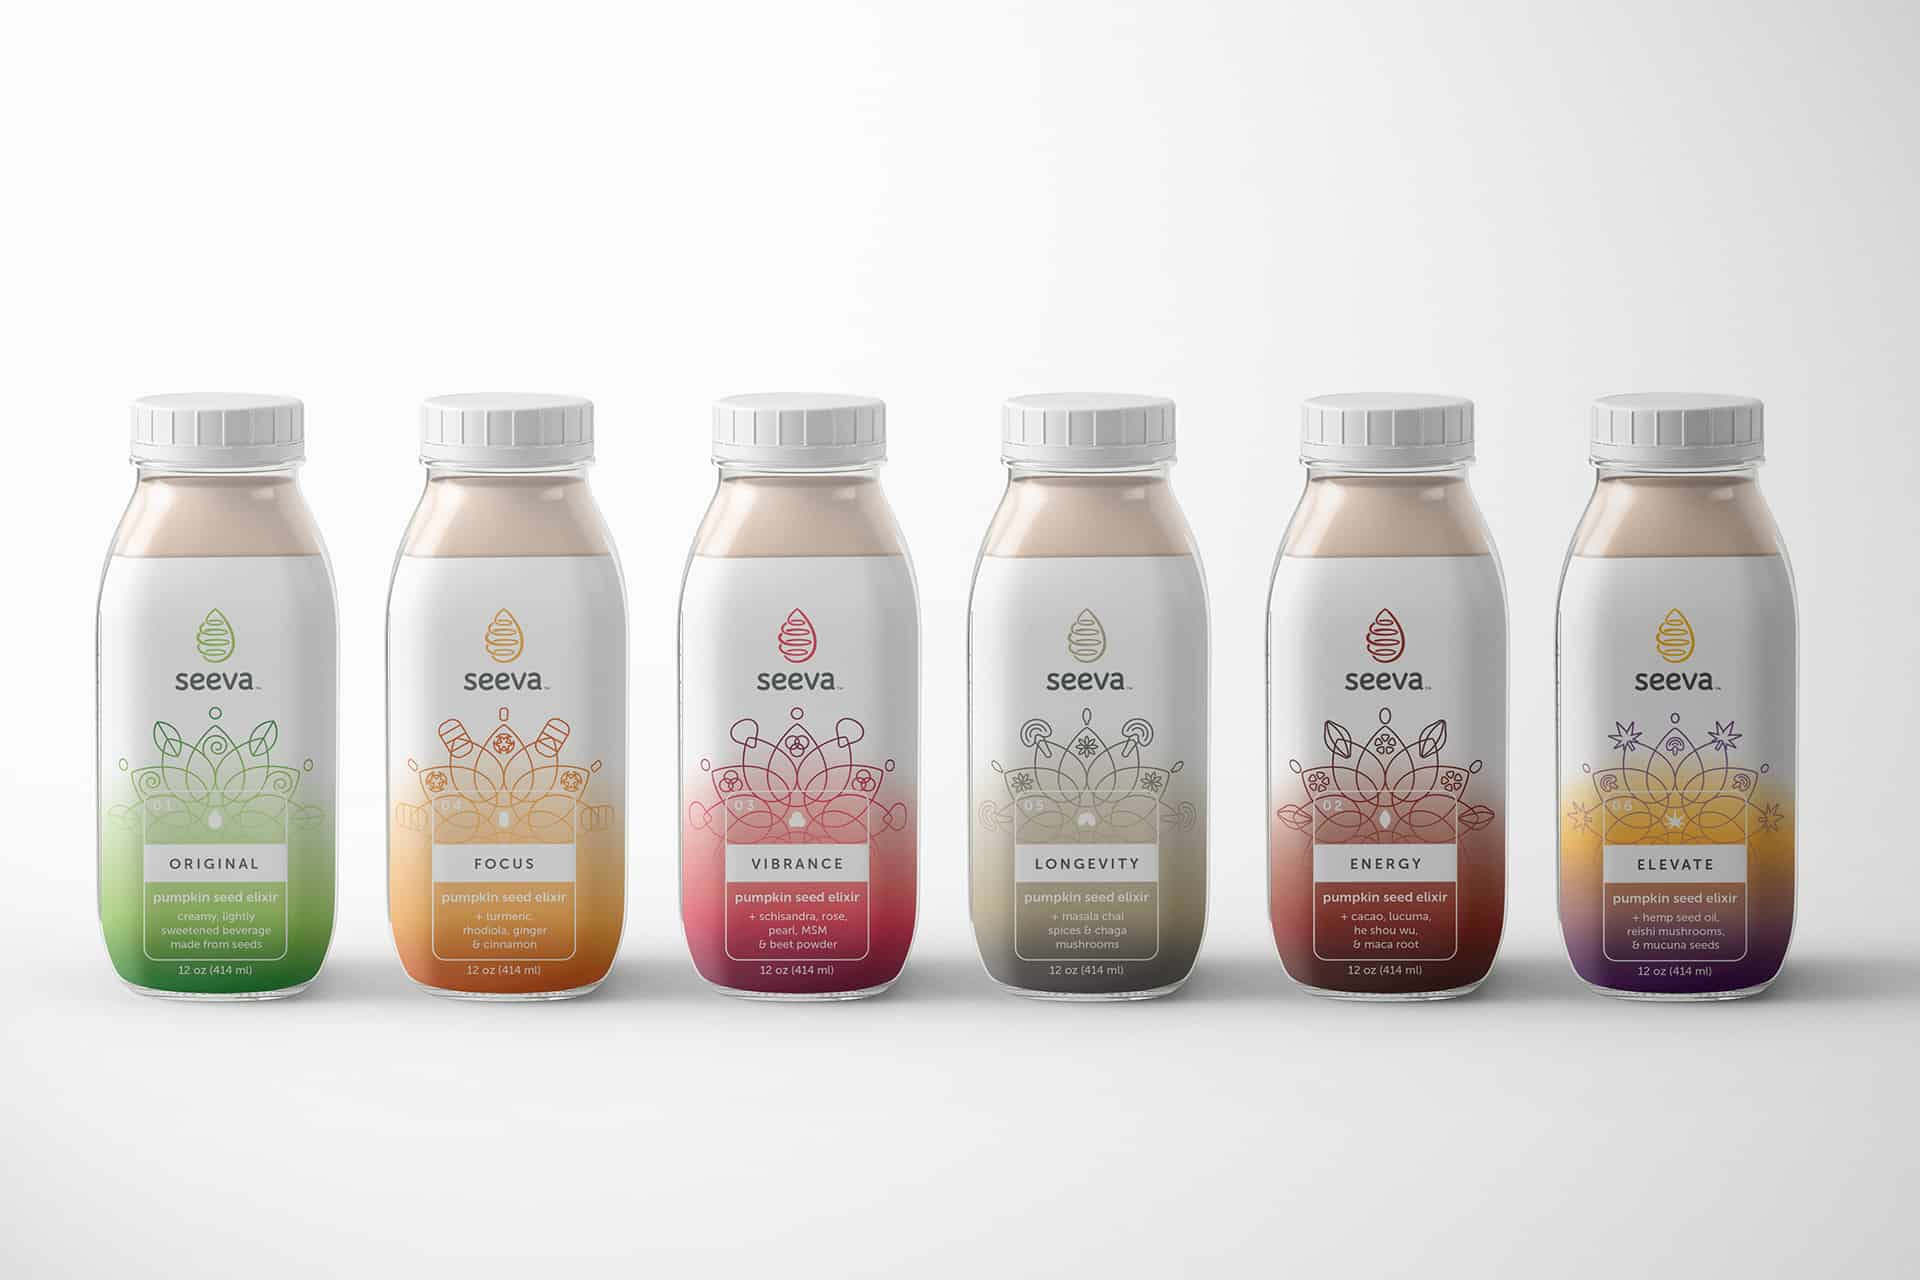 Seeva alternative milk beverage branding and packaging